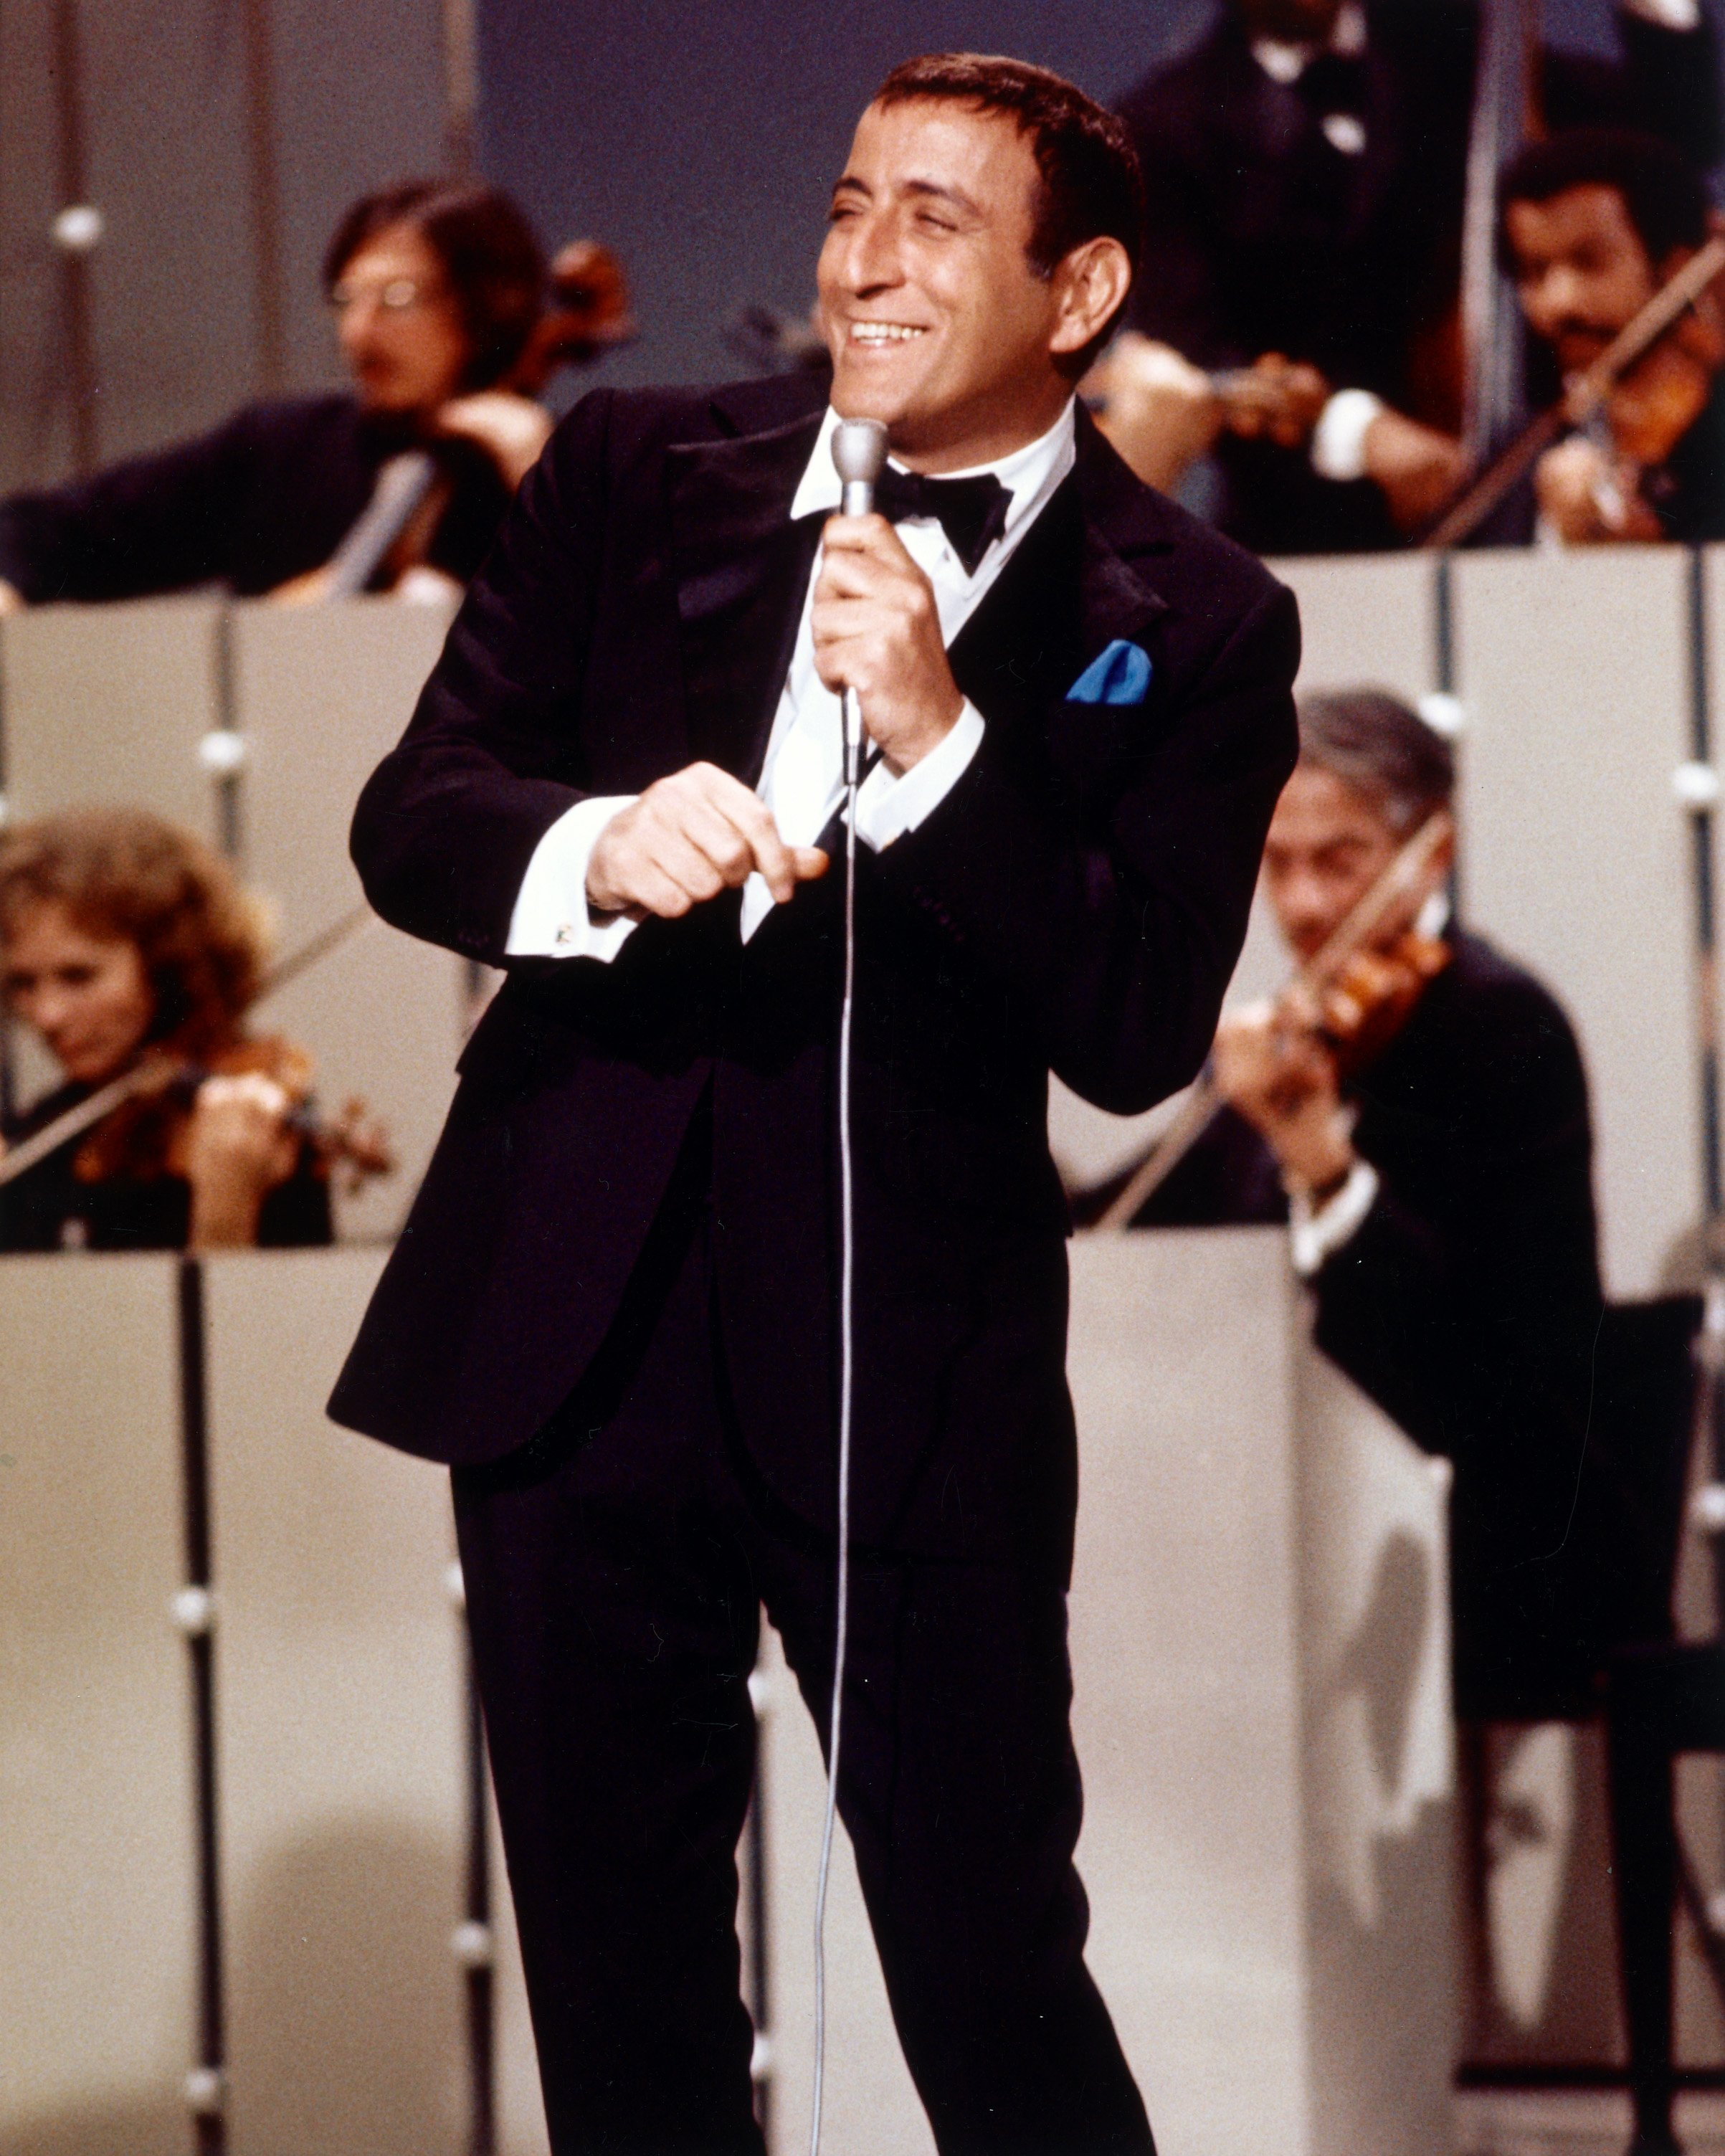 American singer Tony Bennett, circa 1965. | Source: Getty Images